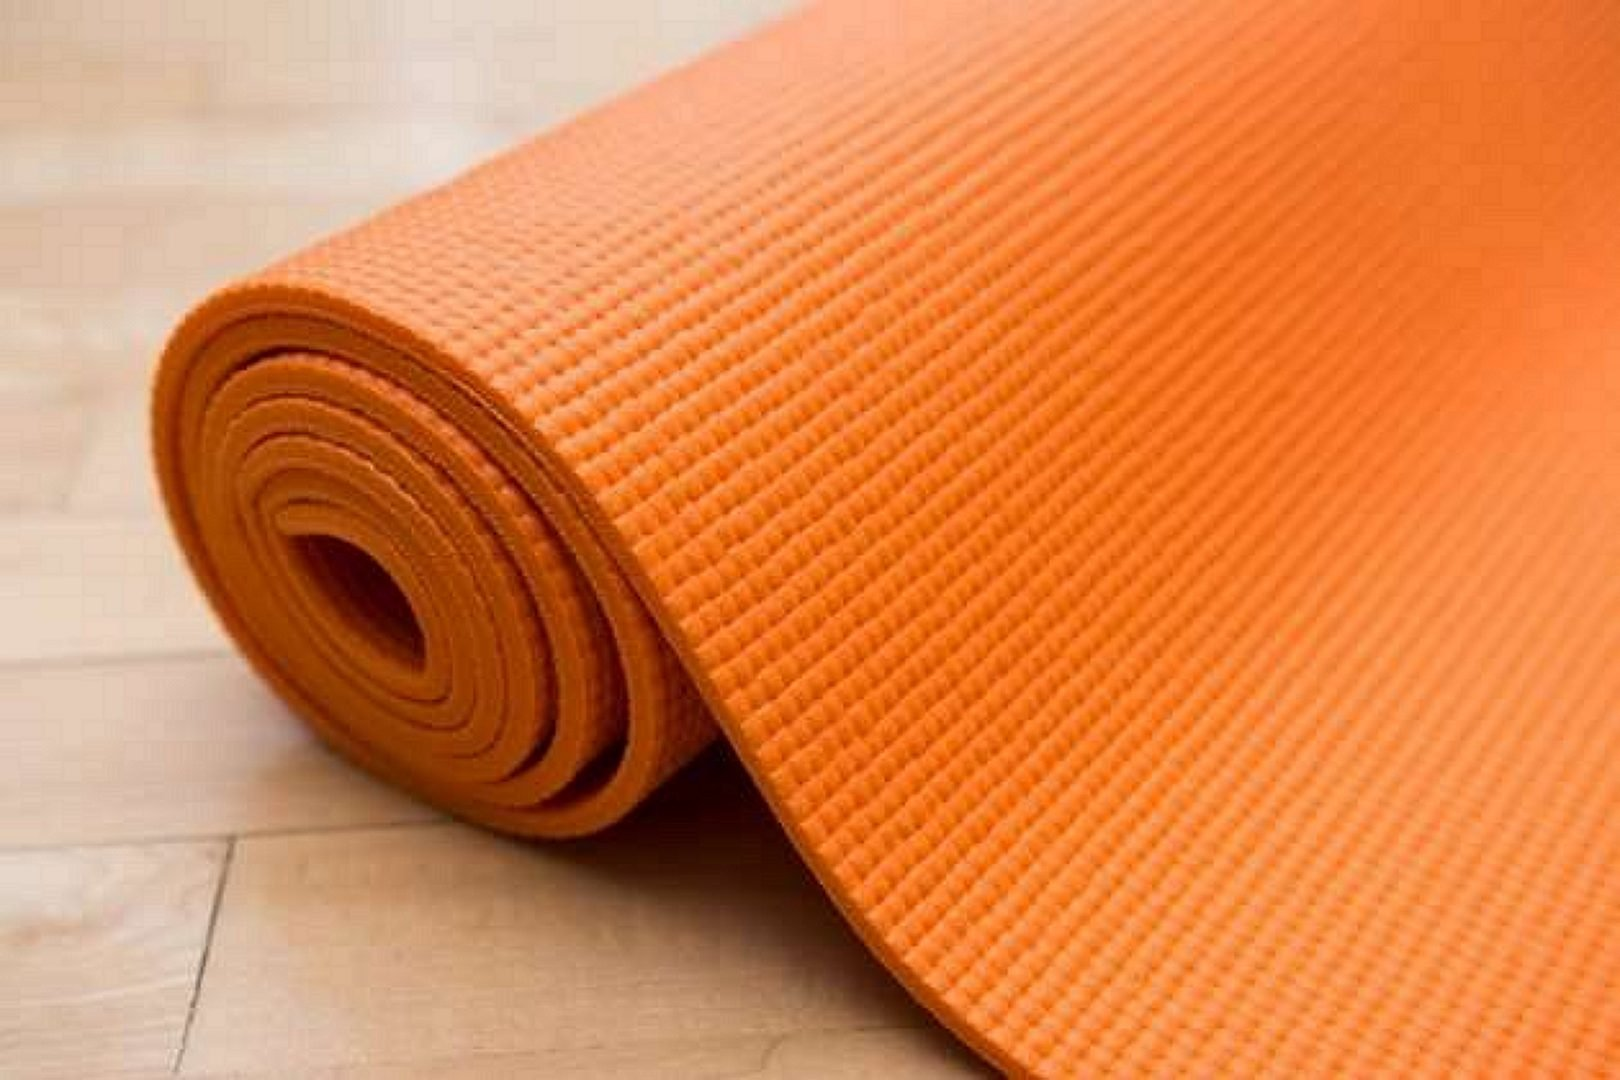 6mm Yoga Mat, orange